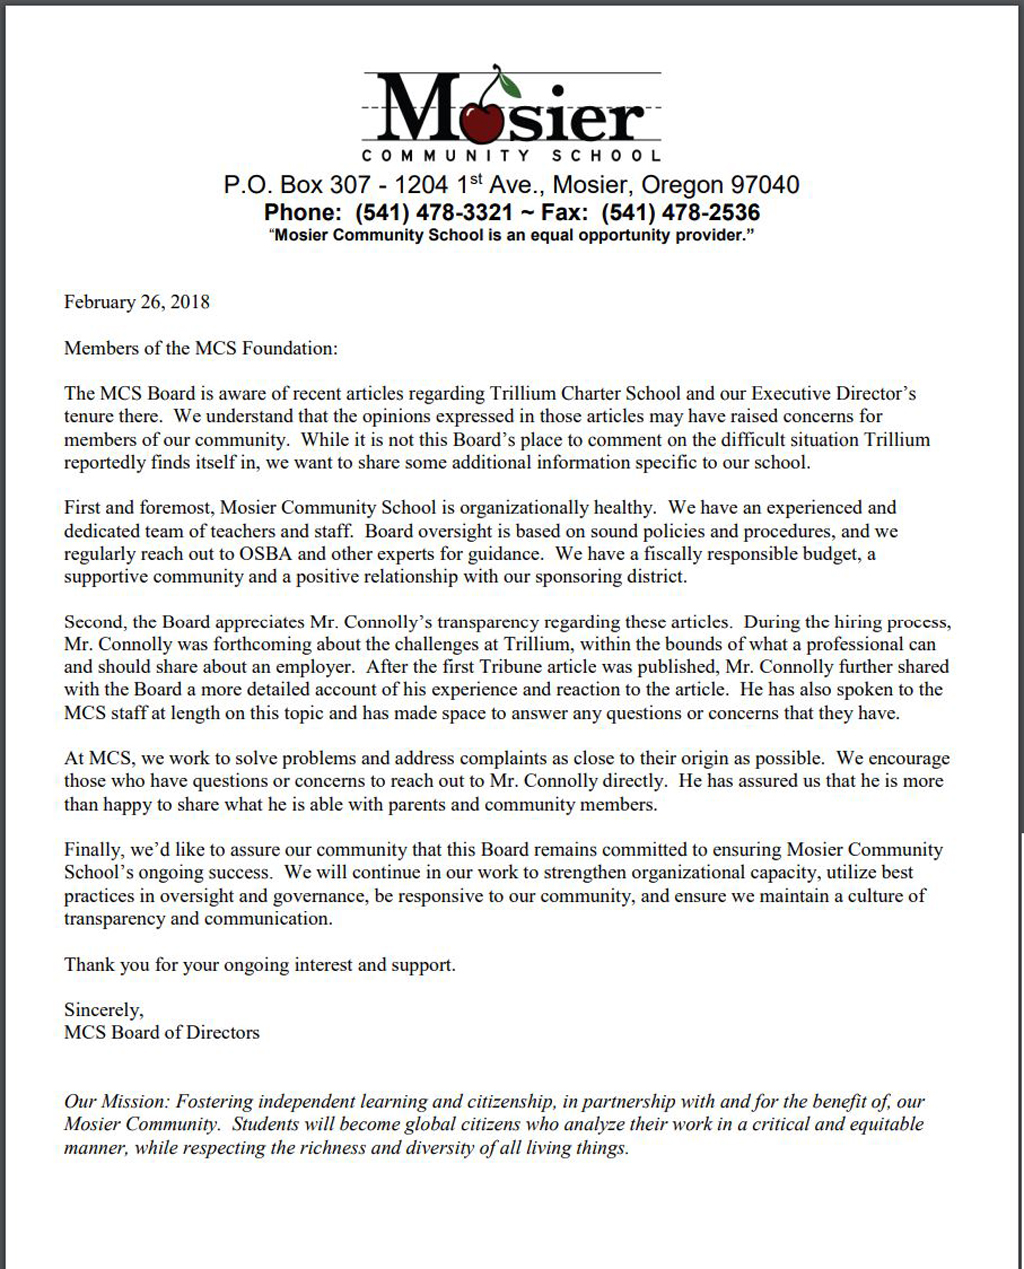 Mosier community school posts letter to parents and concerned citizens mr connolly is currently executive director at mosier community school on february 28 the mosier community school issued a letter to those with concerns thecheapjerseys Image collections